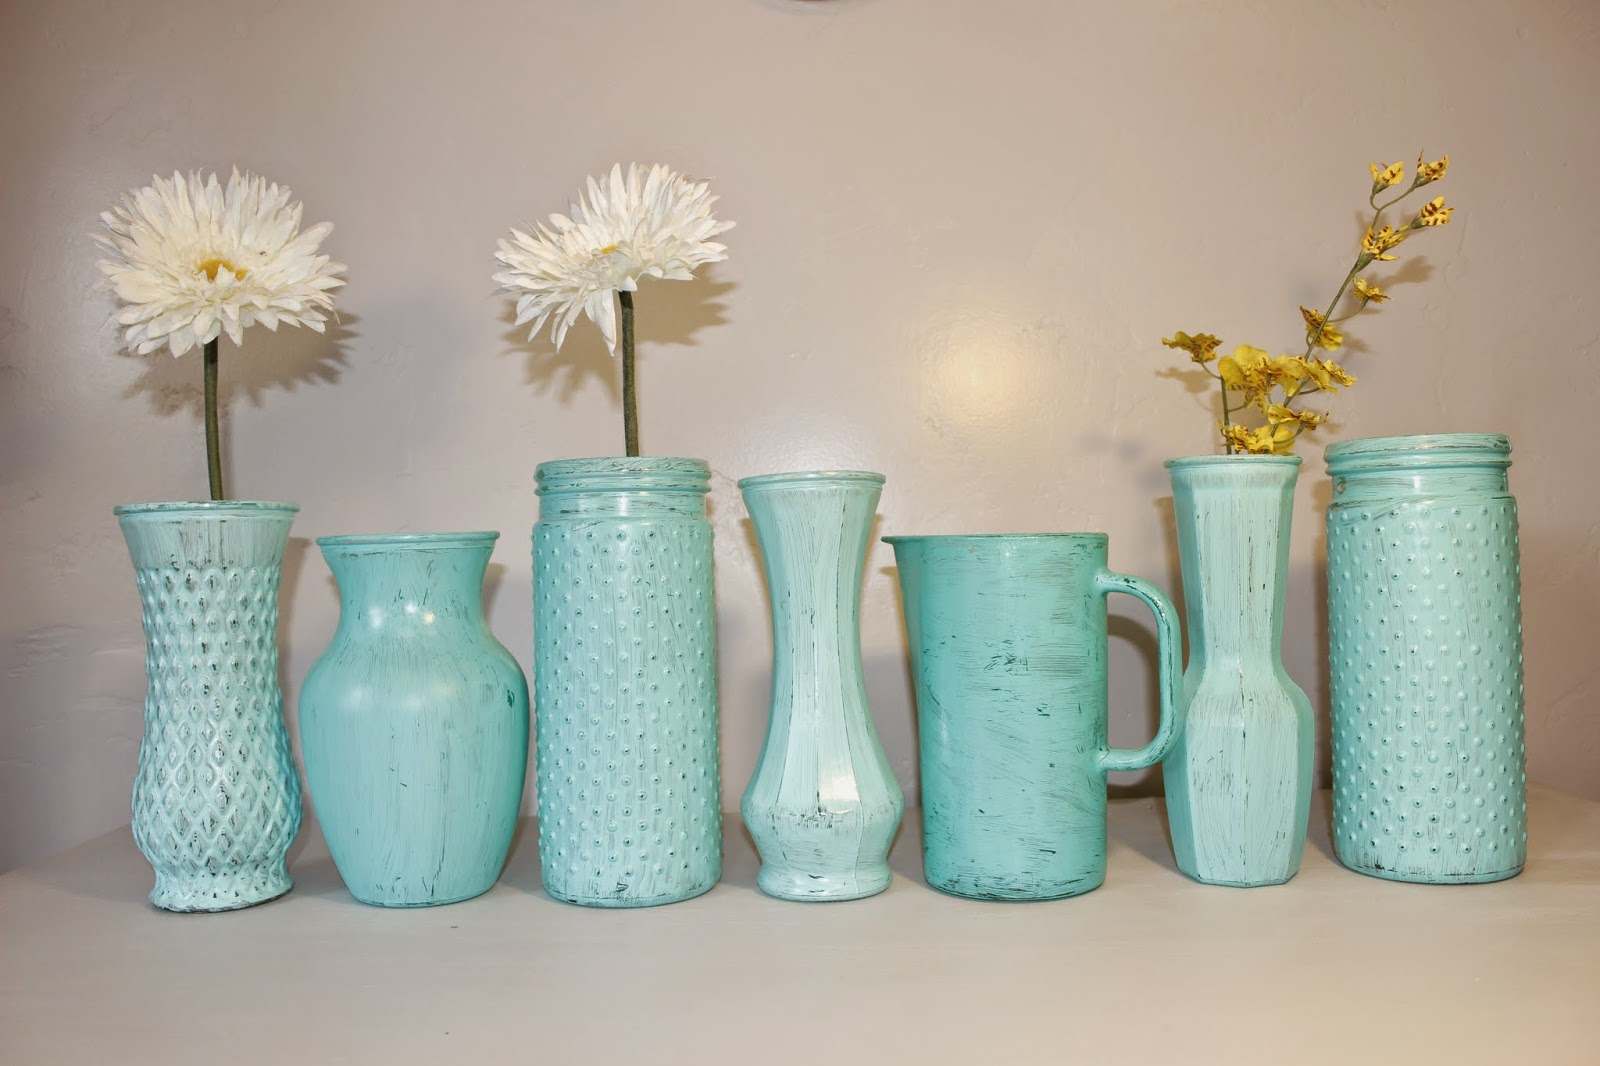 rustic vase, wedding vase, rustic wedding vase, handpainted vase, coastal wedding vase, antique vase, shabby chic vase, distressed vase, wedding decor, rustic wedding decor, rustic wedding centerpiece, turquoise vase, handpainted turquoise vase, rustic turquoise vase, rustic teal vase, turquoise wedding decor